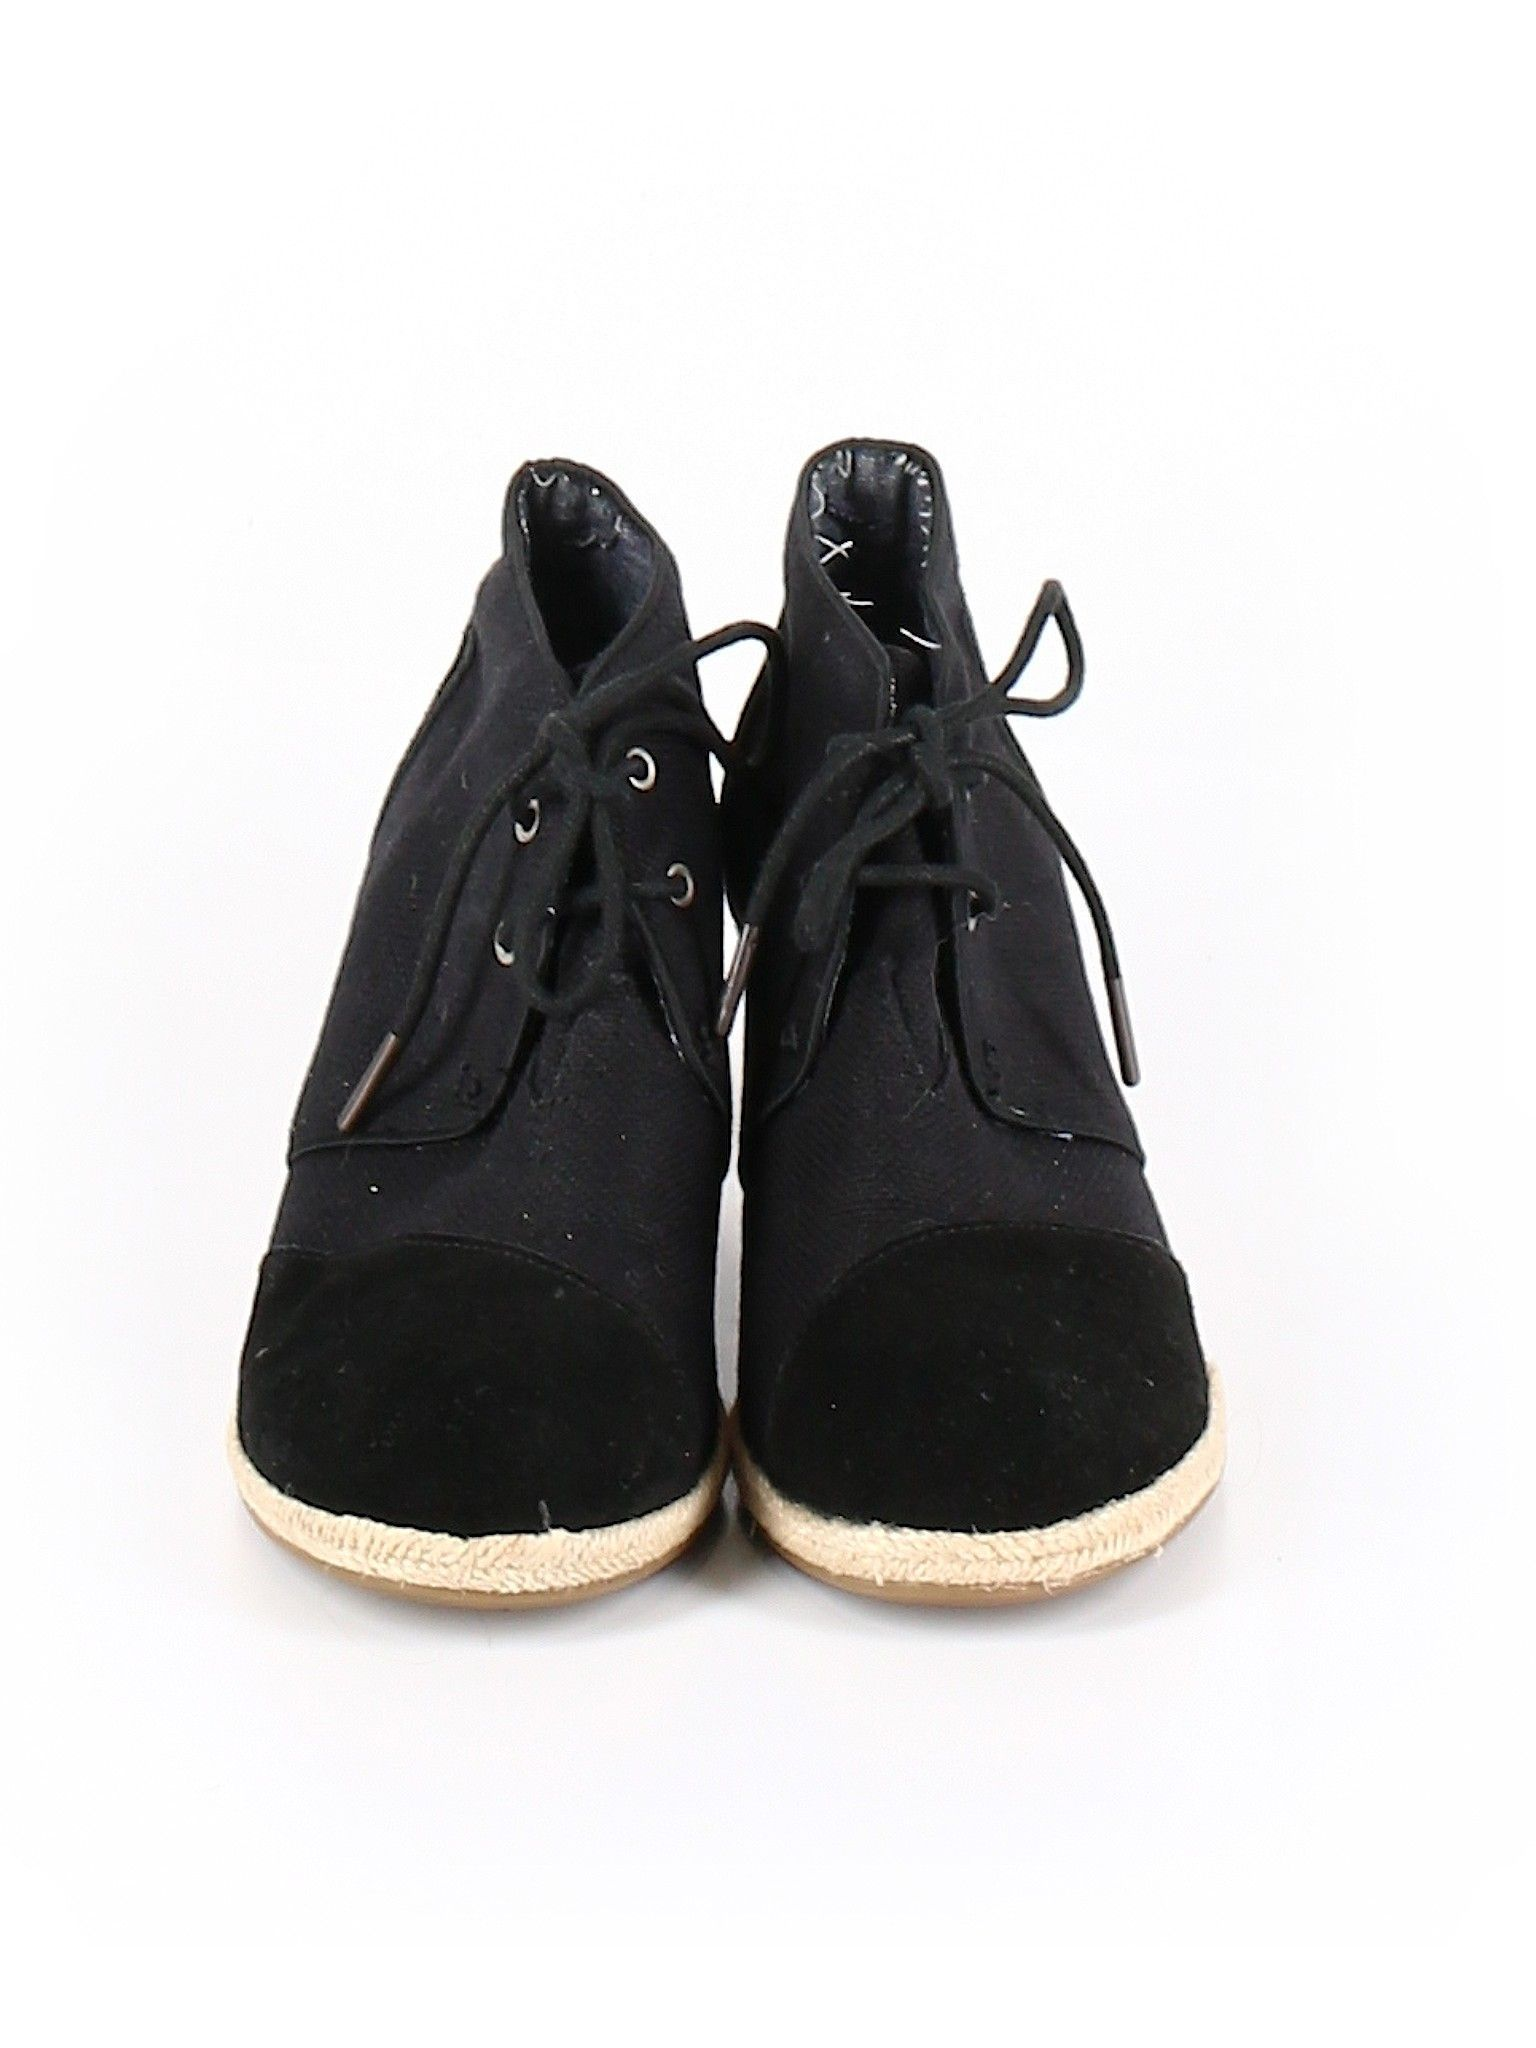 TOMS Wedge: Black Solid Women's Shoes - Size 7 1/2 #tomwedges TOMS Wedge: Black Solid Women's Shoes - Size 7 1/2 #tomwedges TOMS Wedge: Black Solid Women's Shoes - Size 7 1/2 #tomwedges TOMS Wedge: Black Solid Women's Shoes - Size 7 1/2 #tomwedges TOMS Wedge: Black Solid Women's Shoes - Size 7 1/2 #tomwedges TOMS Wedge: Black Solid Women's Shoes - Size 7 1/2 #tomwedges TOMS Wedge: Black Solid Women's Shoes - Size 7 1/2 #tomwedges TOMS Wedge: Black Solid Women's Shoes - Size 7 1/2 #tomwedges TOMS #tomwedges